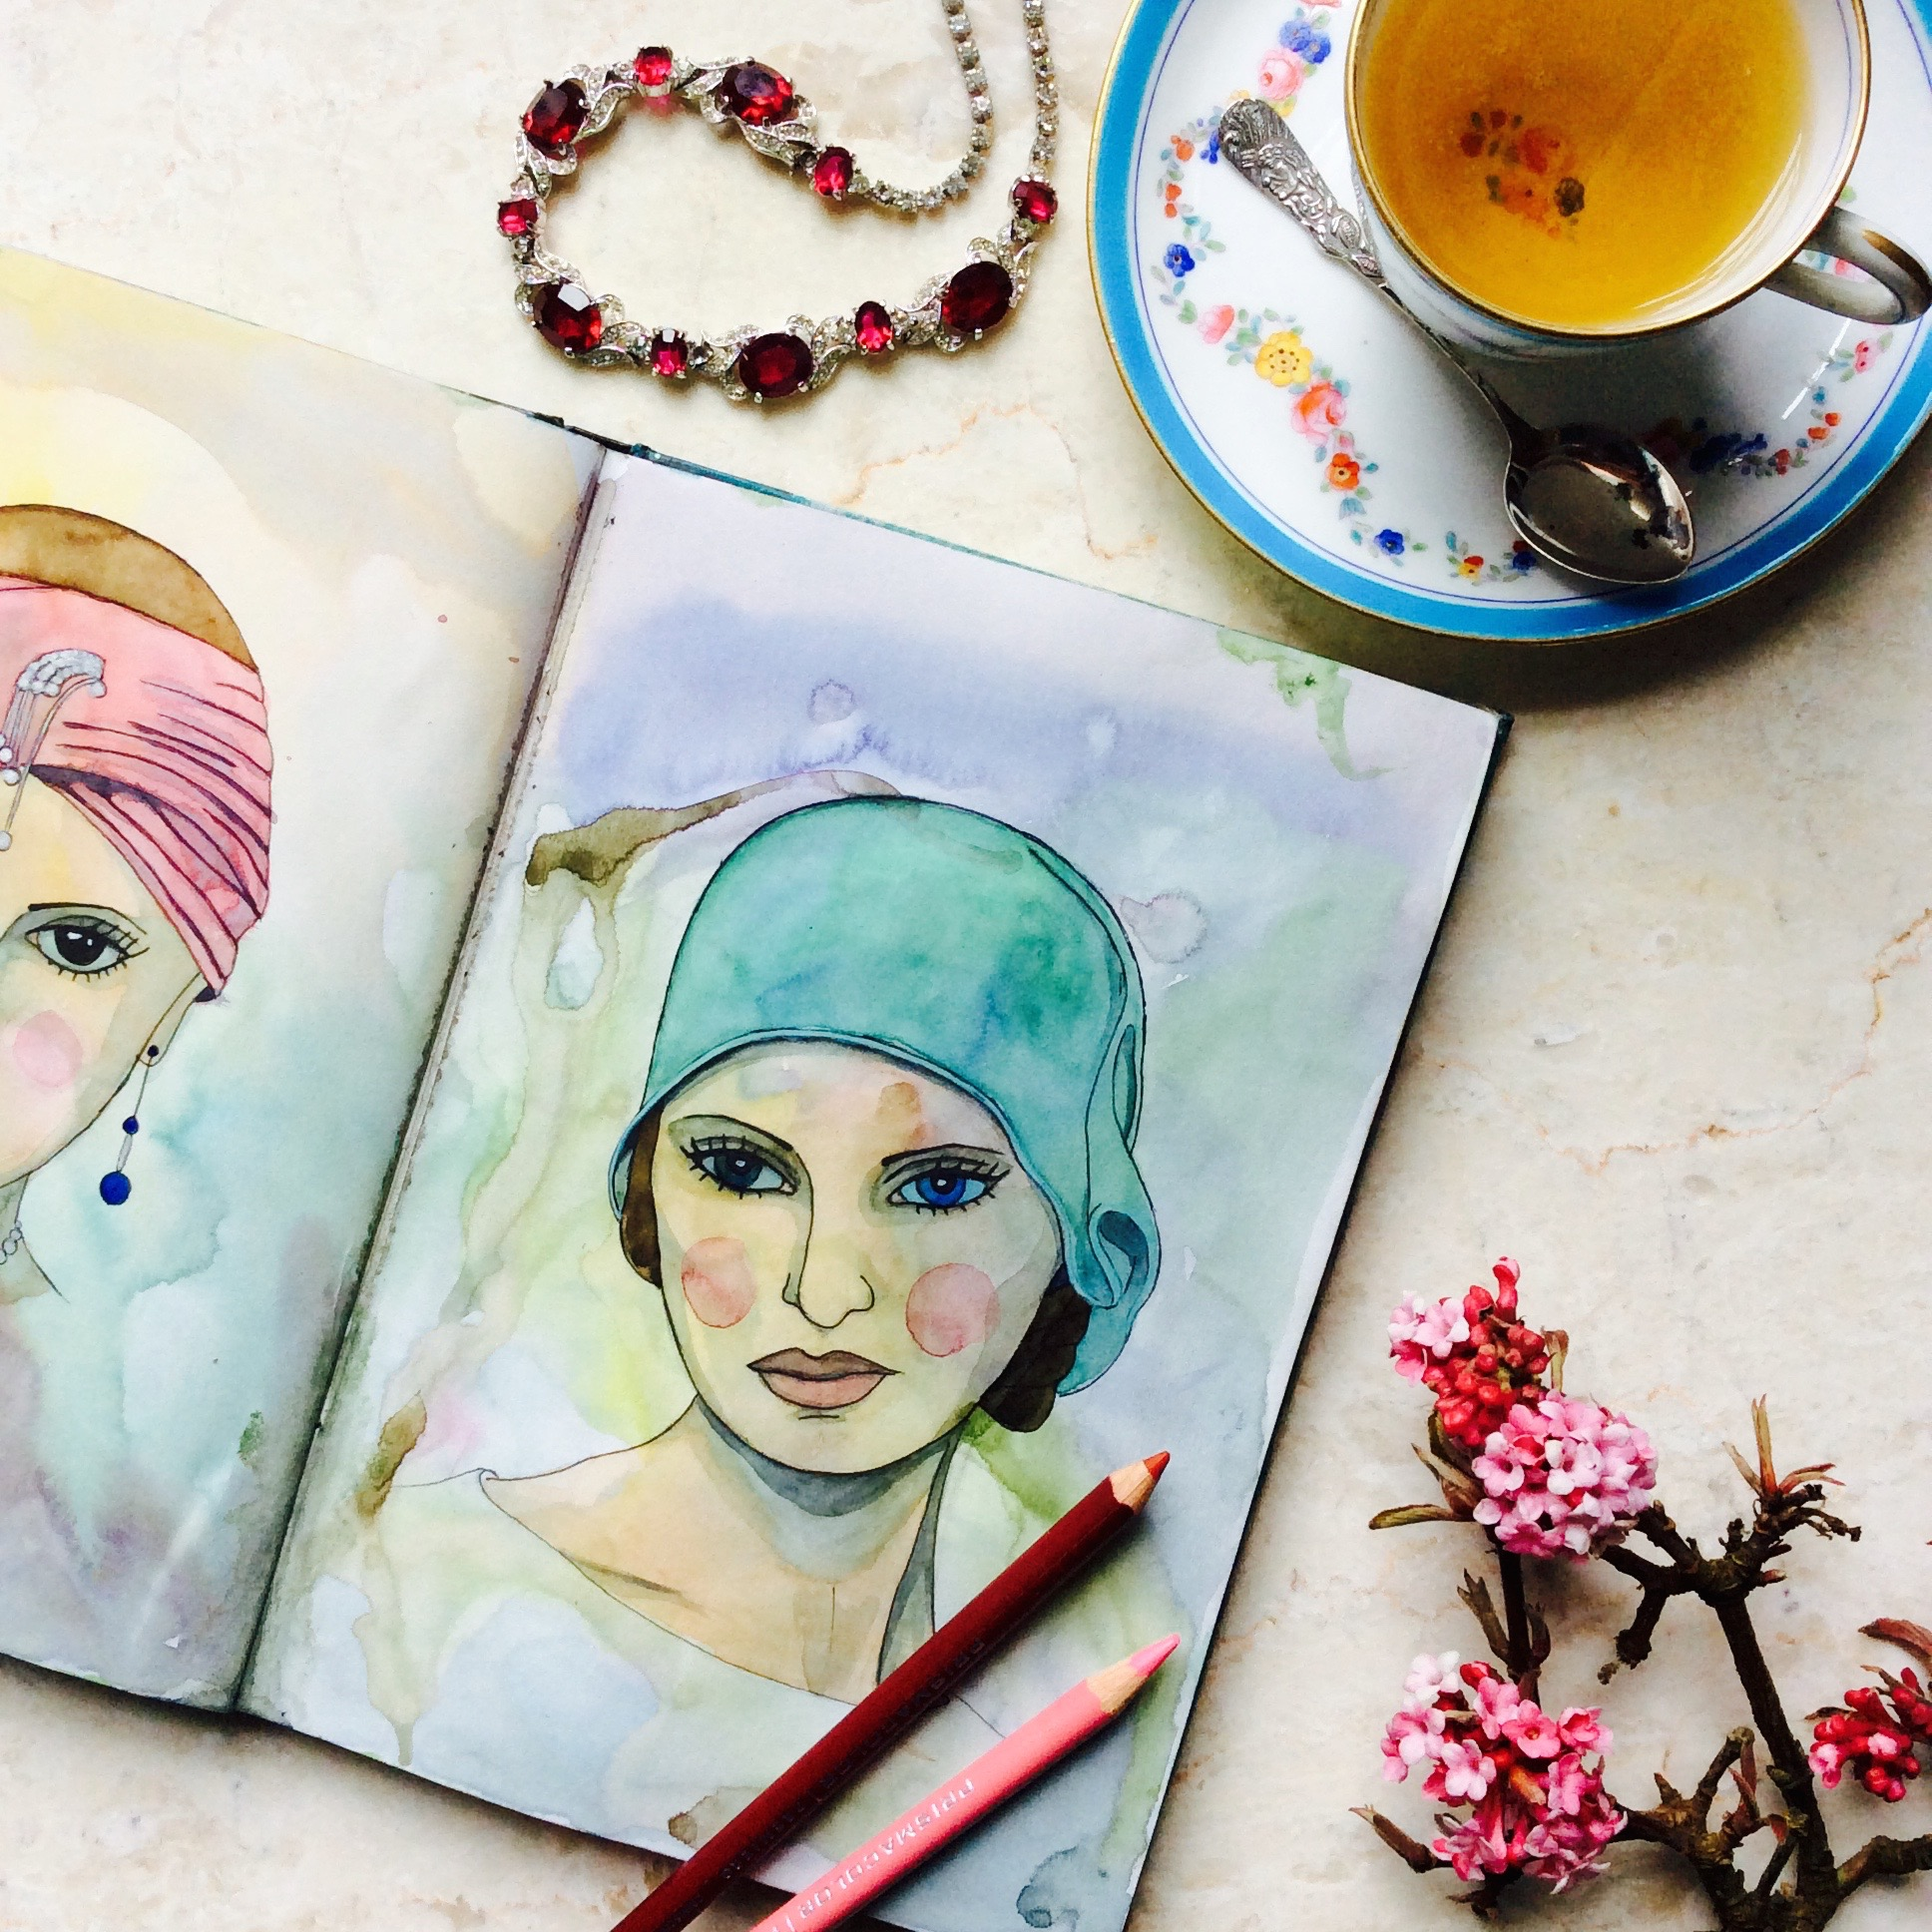 Vintage Fashion Glamour Girl Portrait in Watercolour Paint